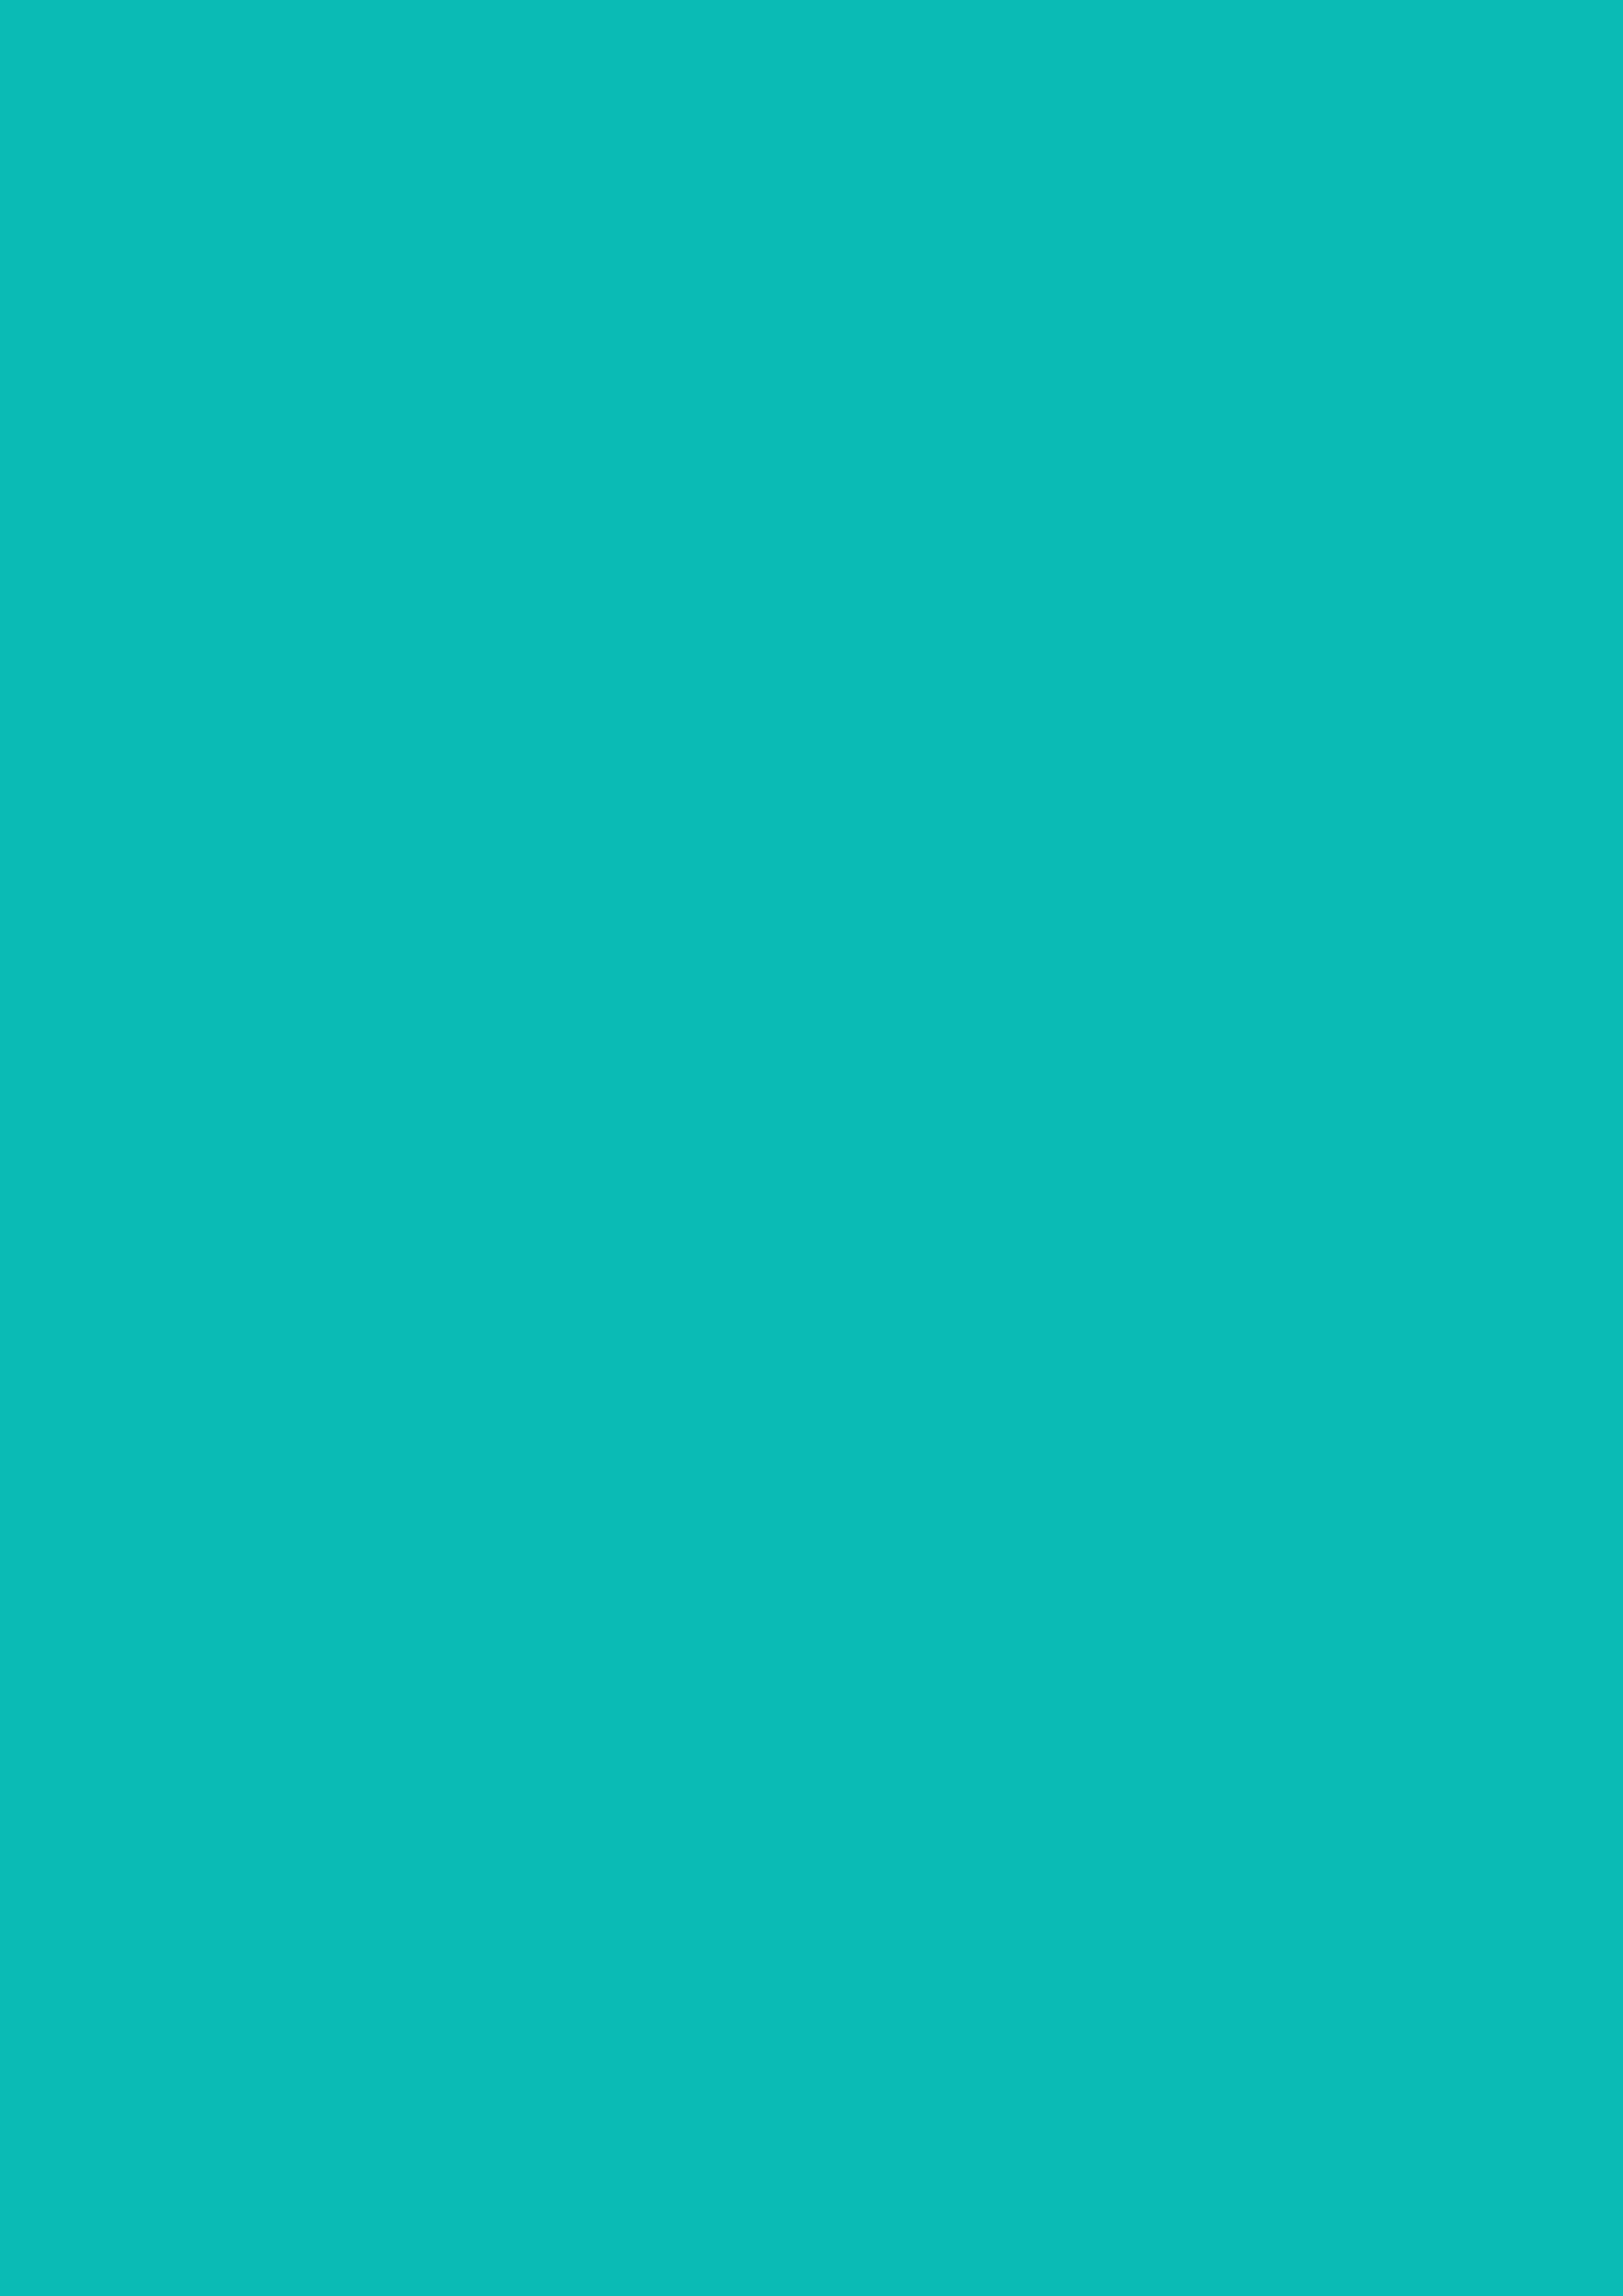 2480x3508 Tiffany Blue Solid Color Background